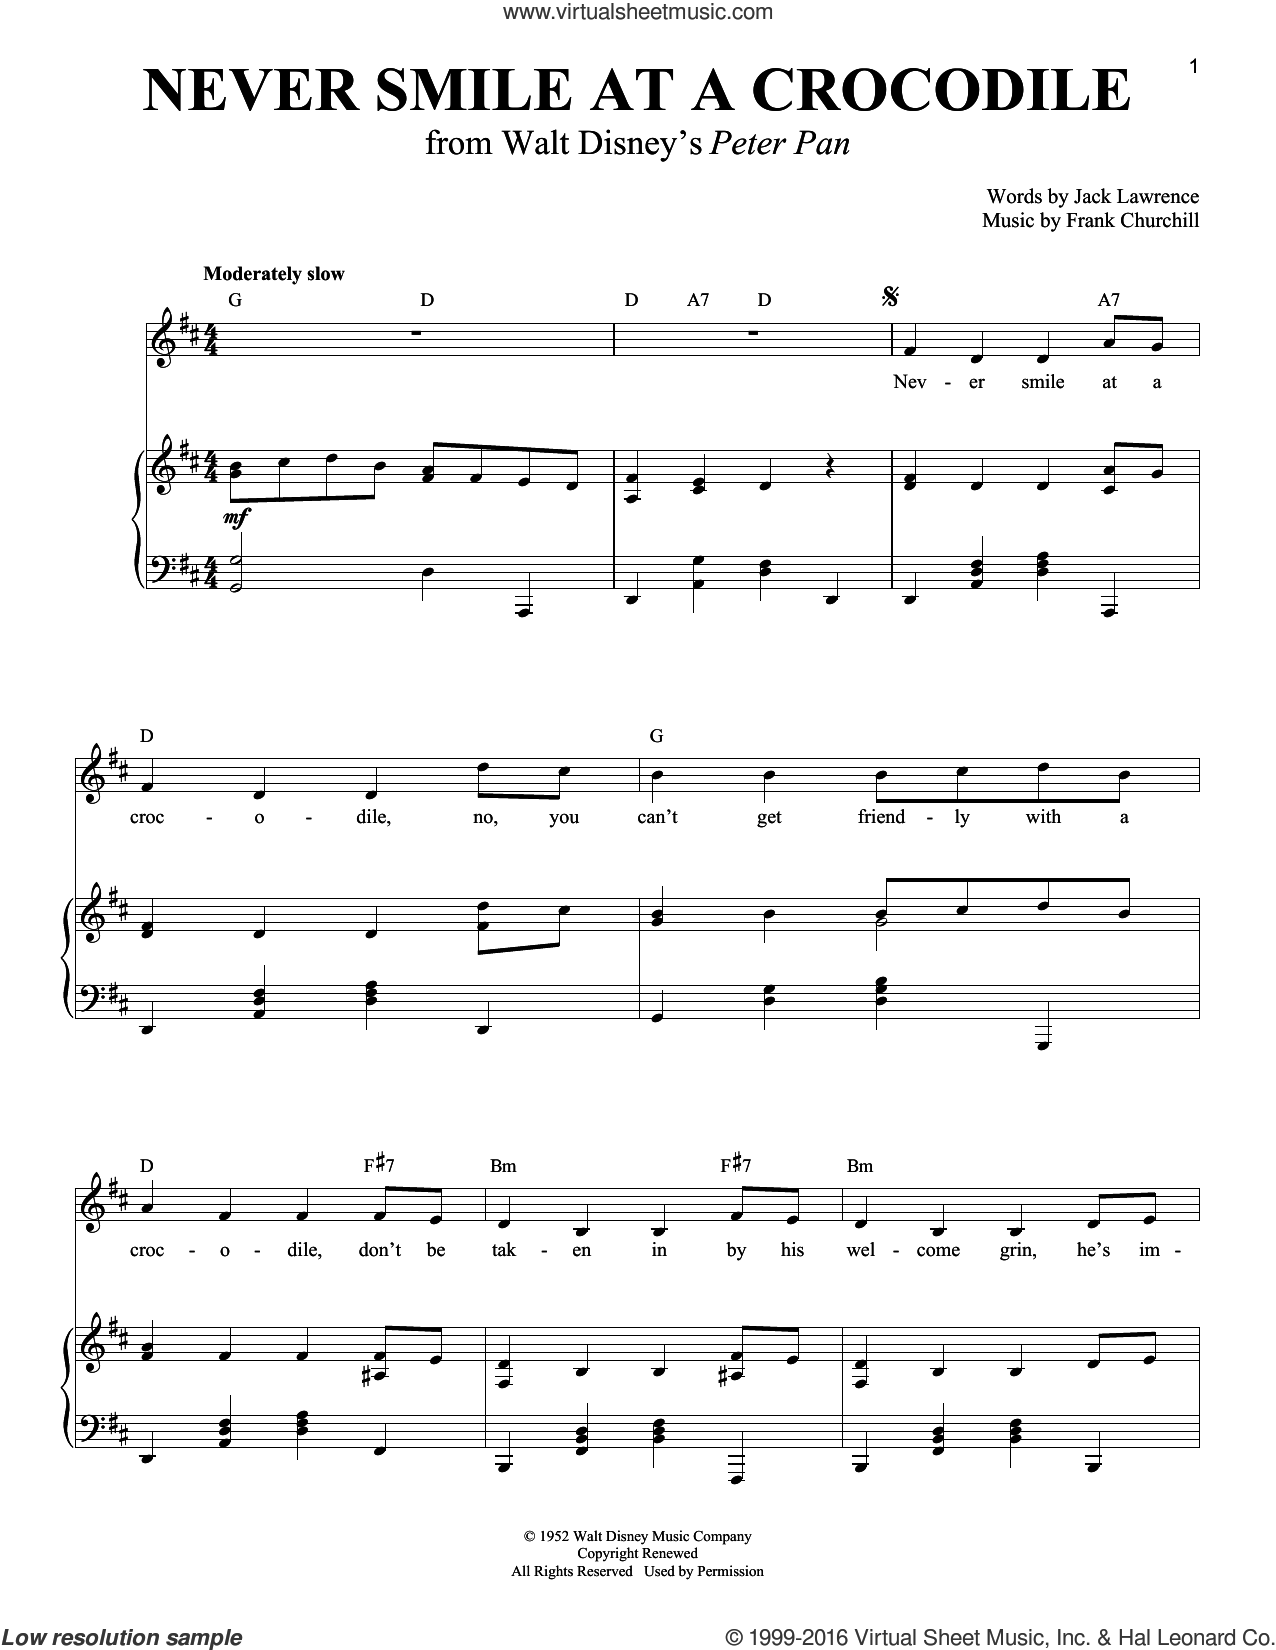 Never Smile At A Crocodile sheet music for voice and piano by Jack Lawrence and Frank Churchill, intermediate skill level